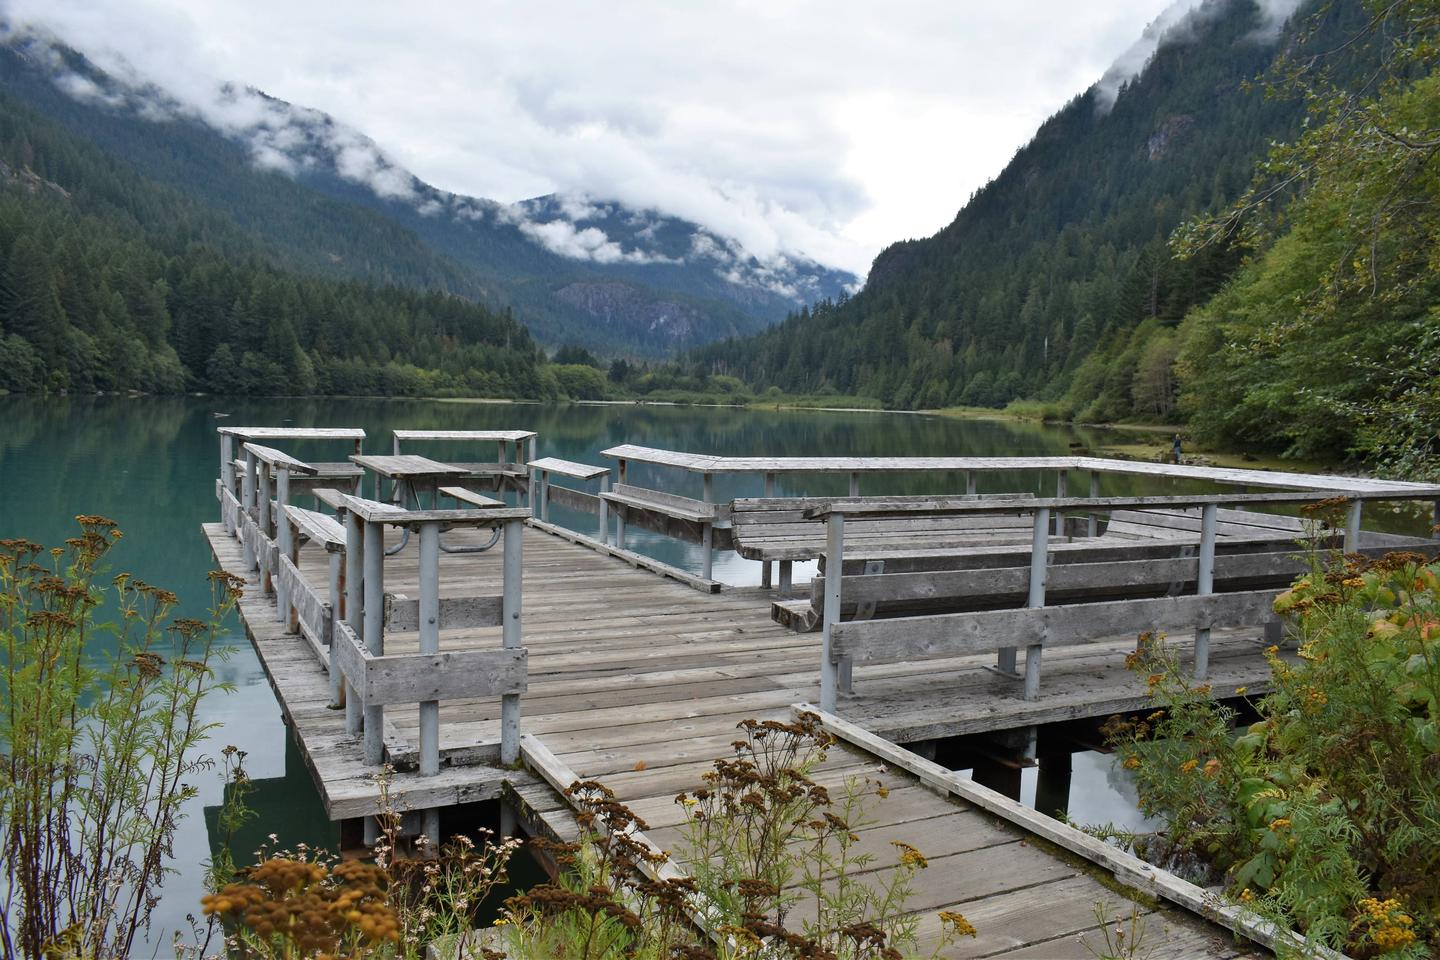 Fishing pier on the shores of Diablo LakePublic fishing pier on Diablo Lake at the Colonial Creek Campground